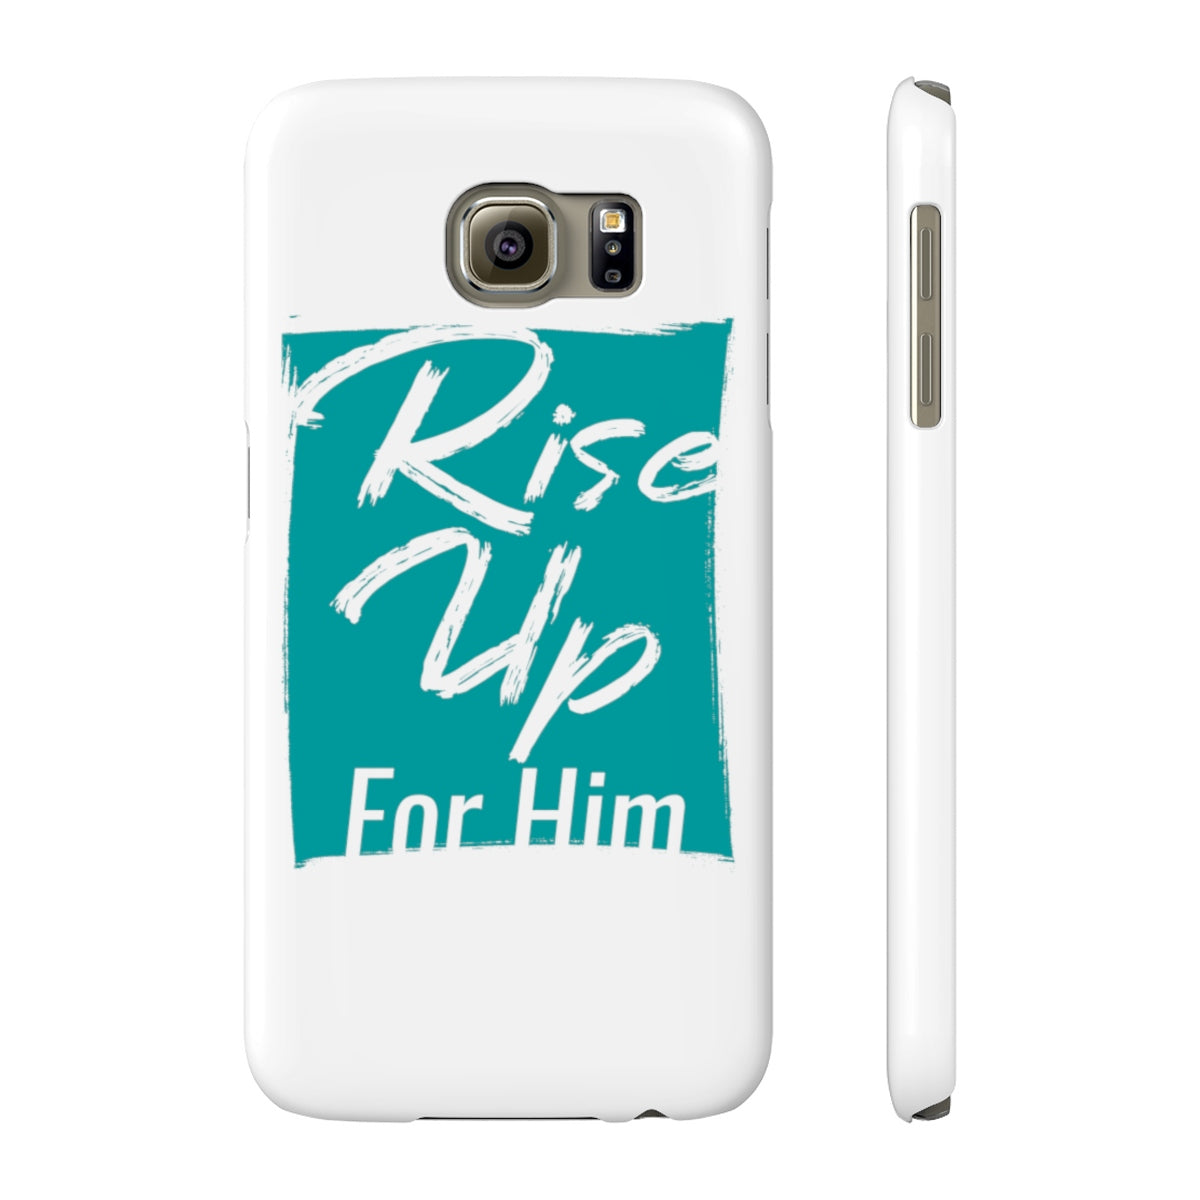 Rise Up Him Phone Cases